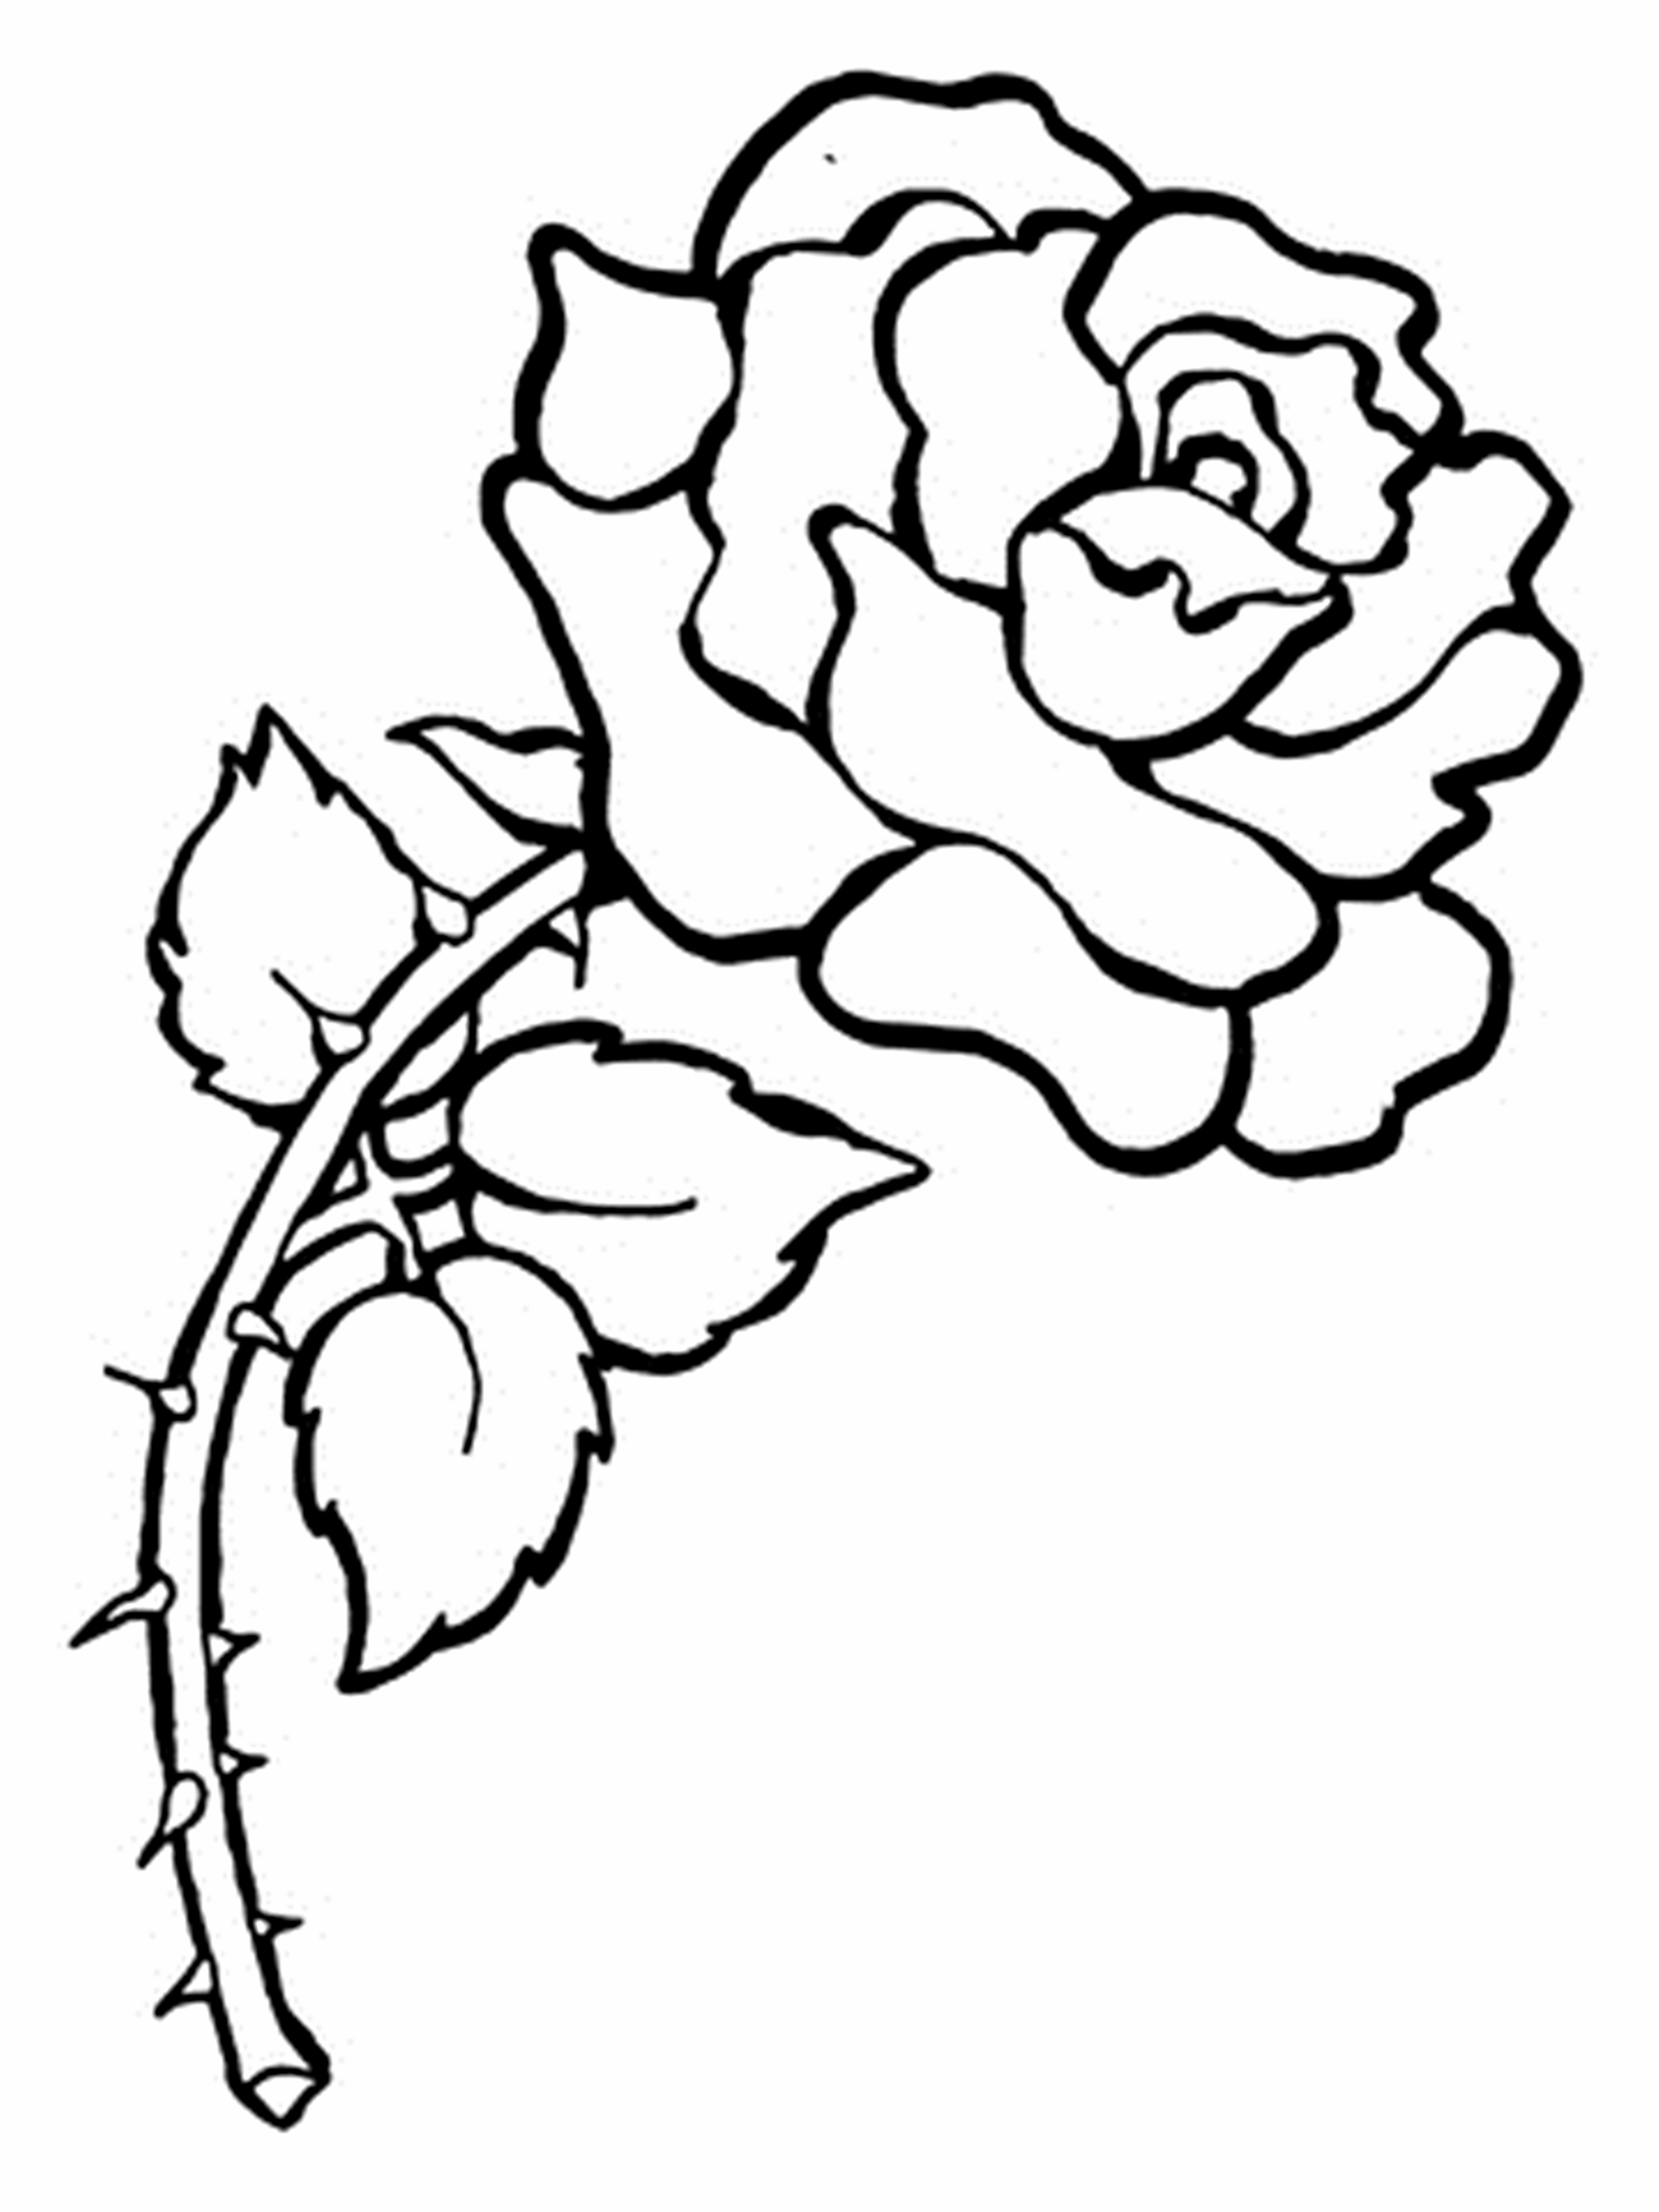 Free Printable Flower Coloring Pages For Kids - Best Coloring Pages - Free Printable Flower Coloring Pages